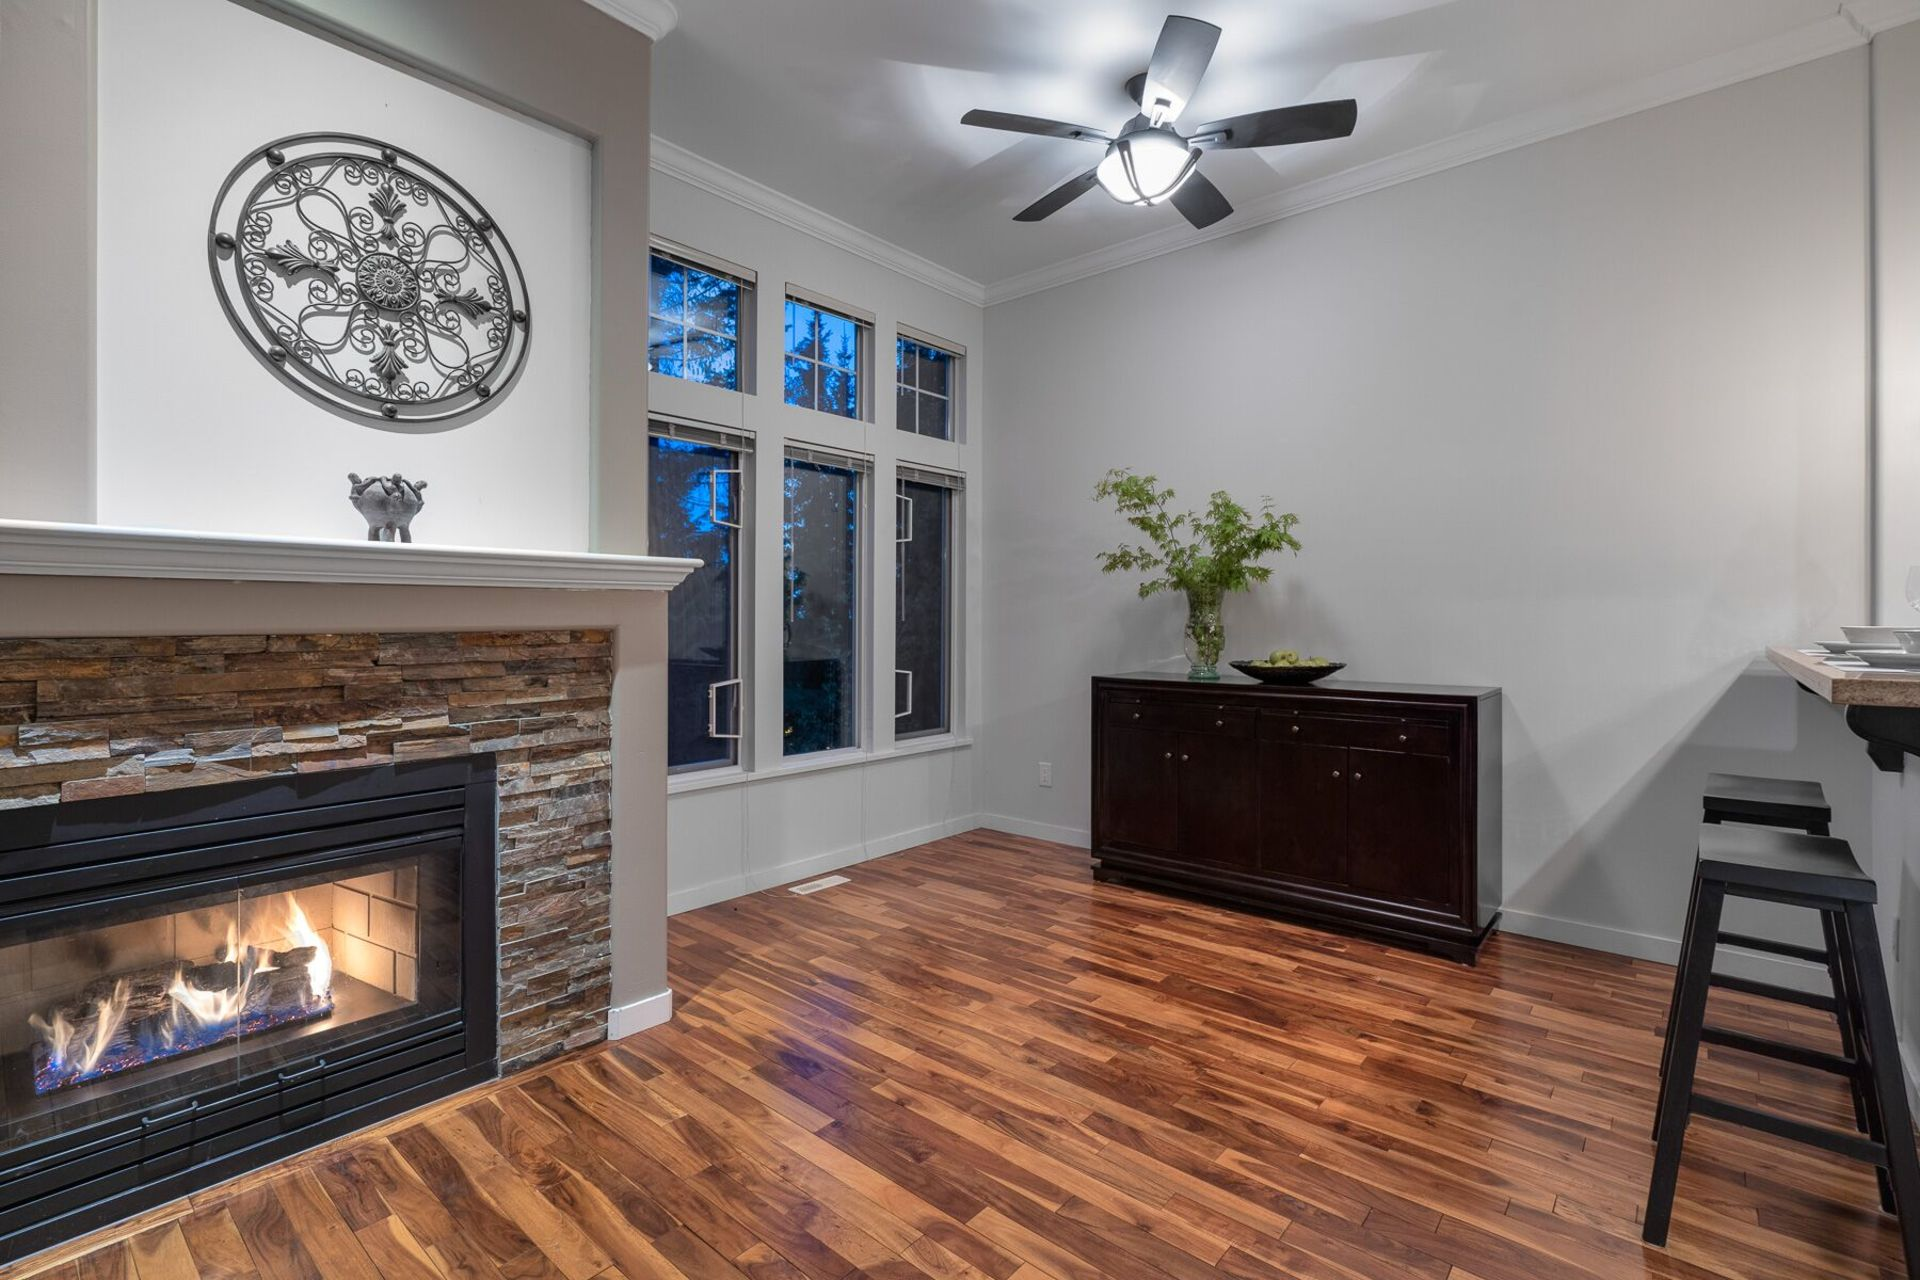 ly-zxsxq at 6 - 1 Aspenwood Drive, Heritage Woods PM, Port Moody